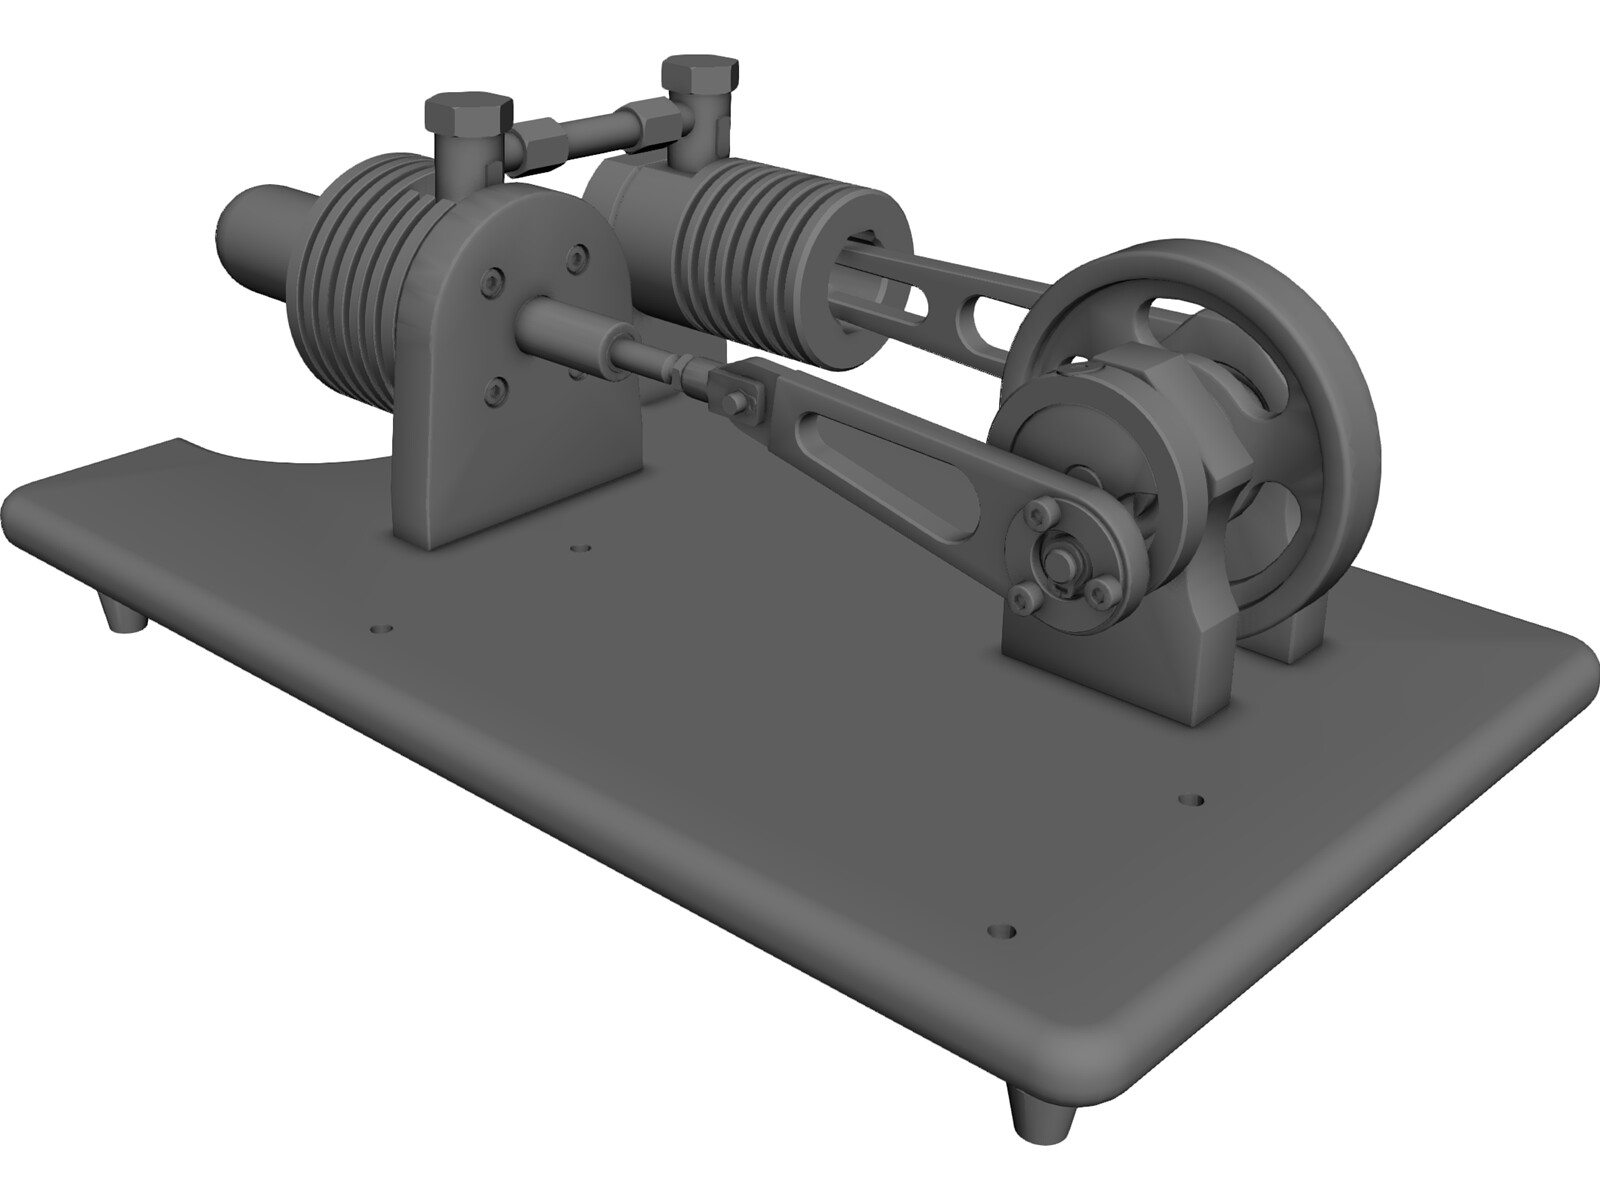 Stirling Engine 3D CAD Model